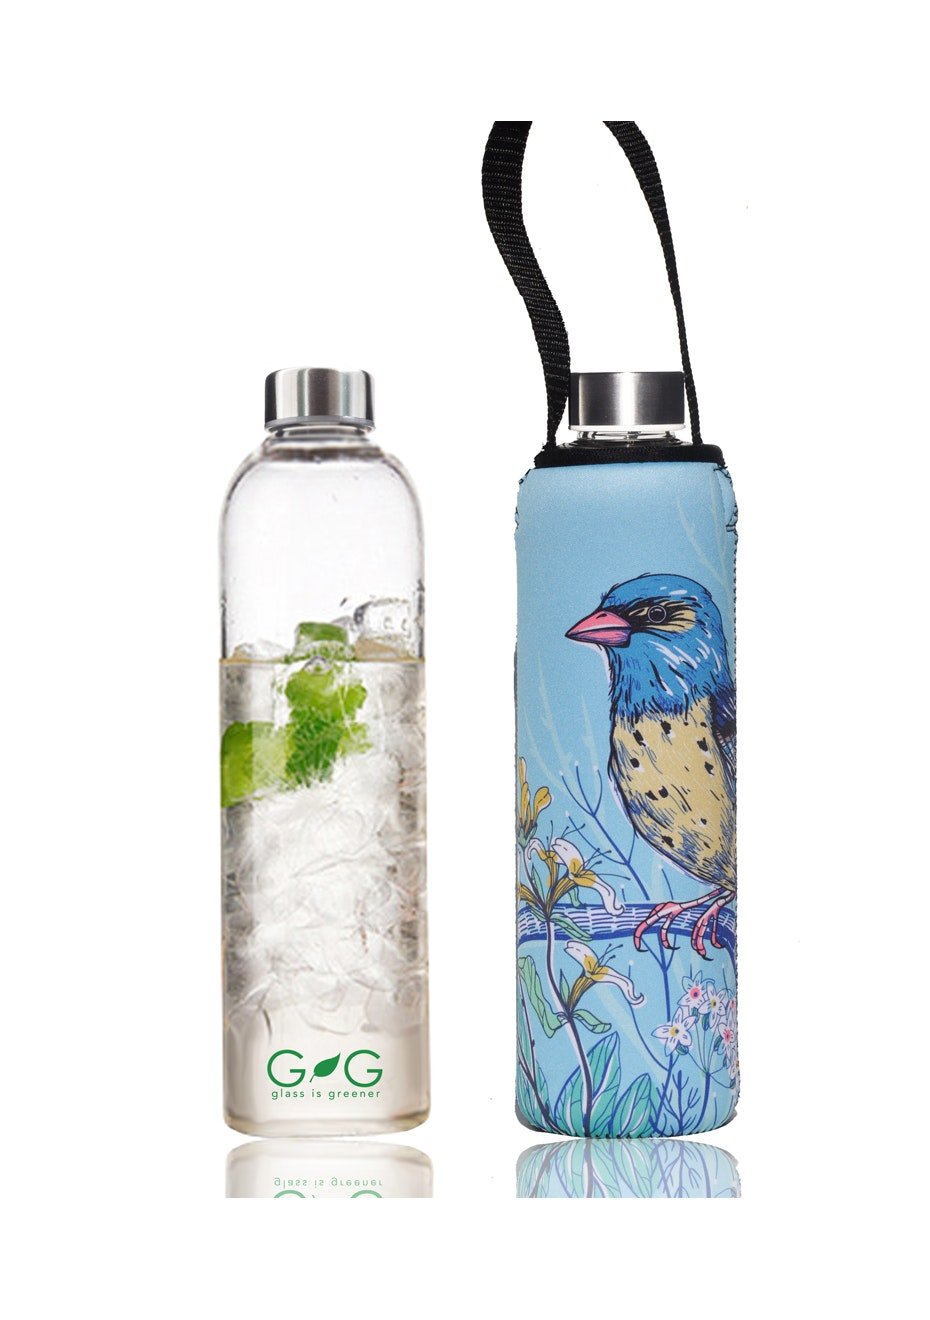 BBBYO - Glass Is Greener Bottle 750 ml + Carry Cover (Kook Print) -750 ml